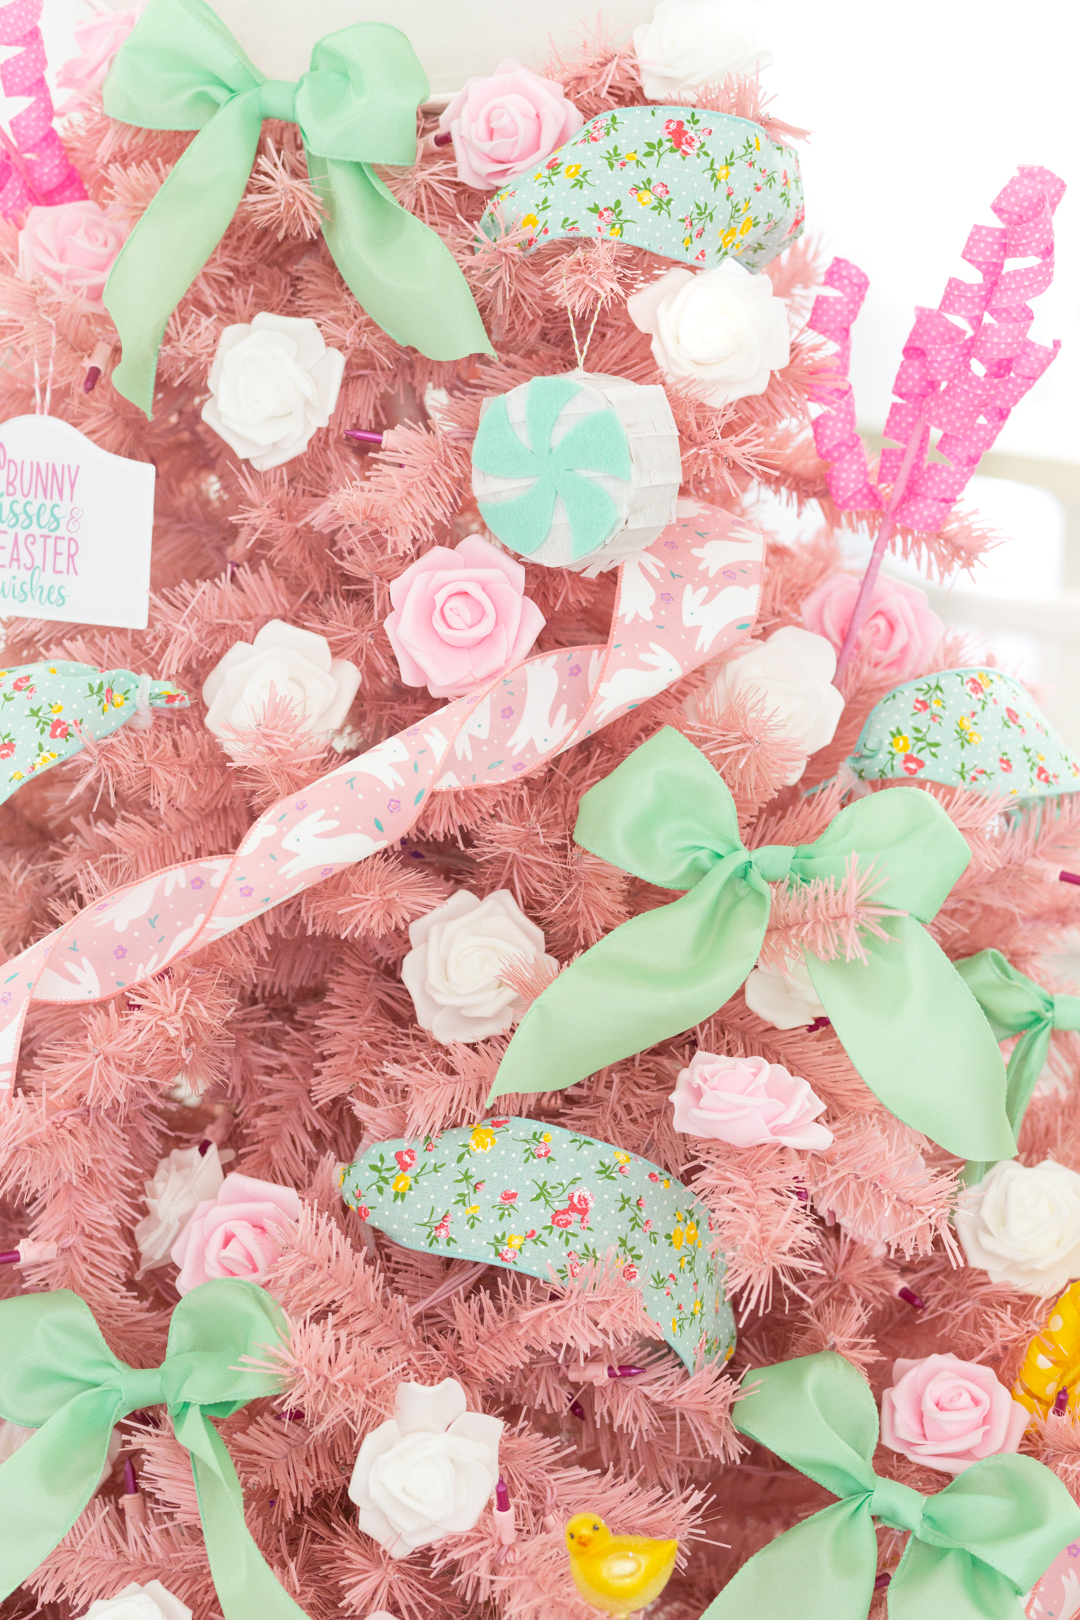 light pink christmas tree decorated for easter, up close view with decorations in focus. small flower heads, big mini ribbons, pink bunny ribbon used as garland.